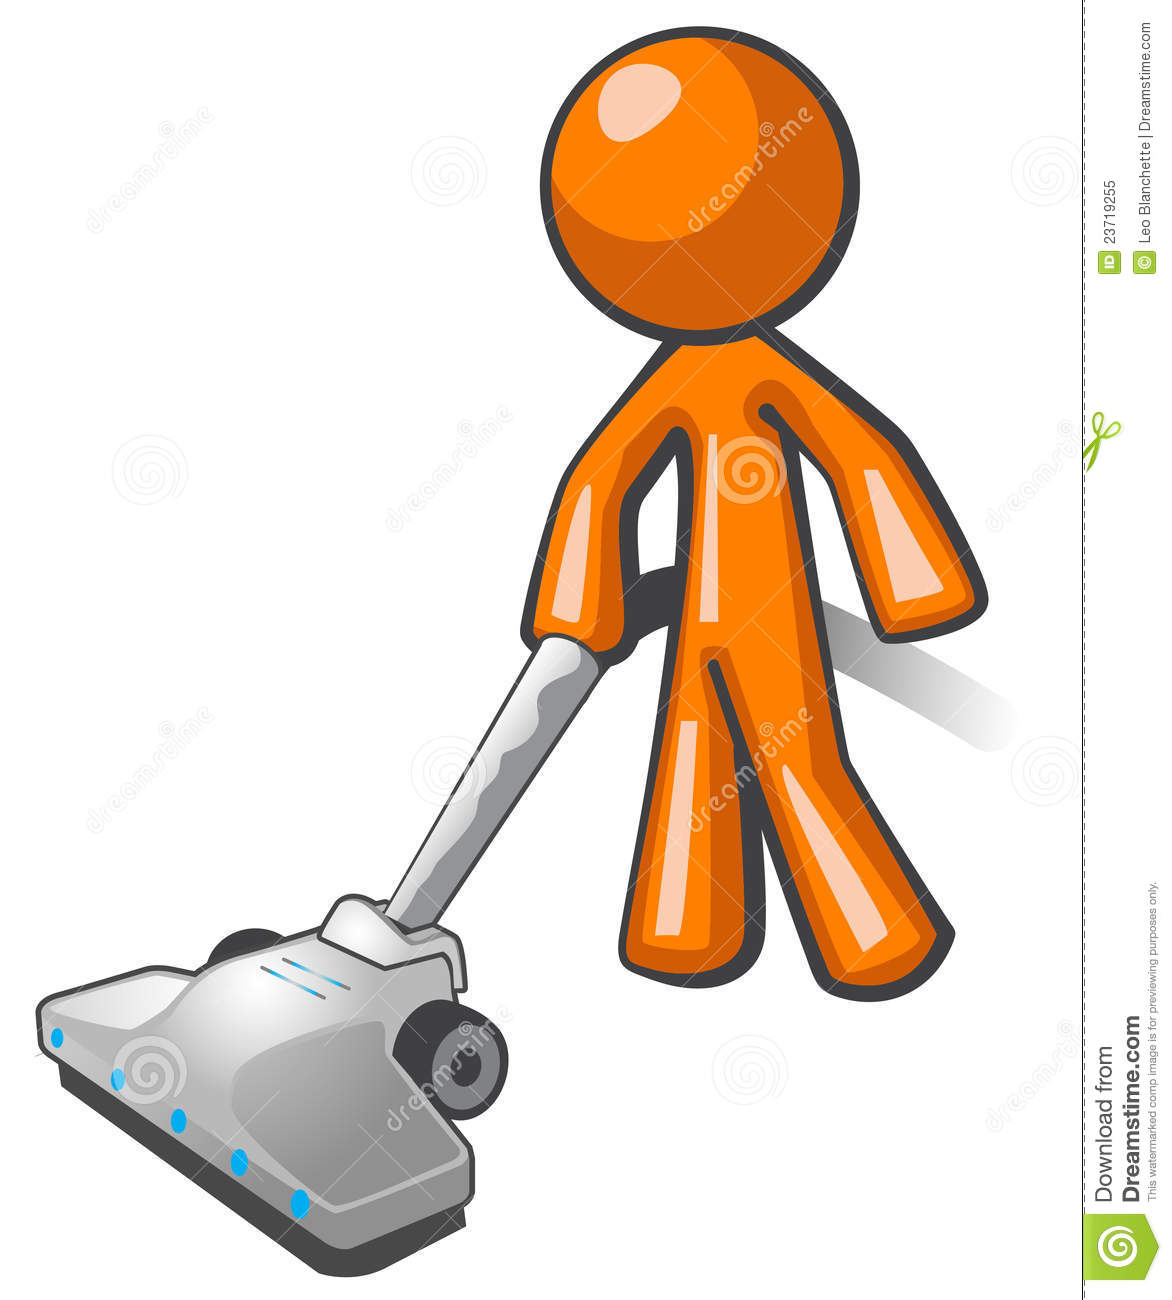 free clipart images of a man vacuuming without watermarks 20 free